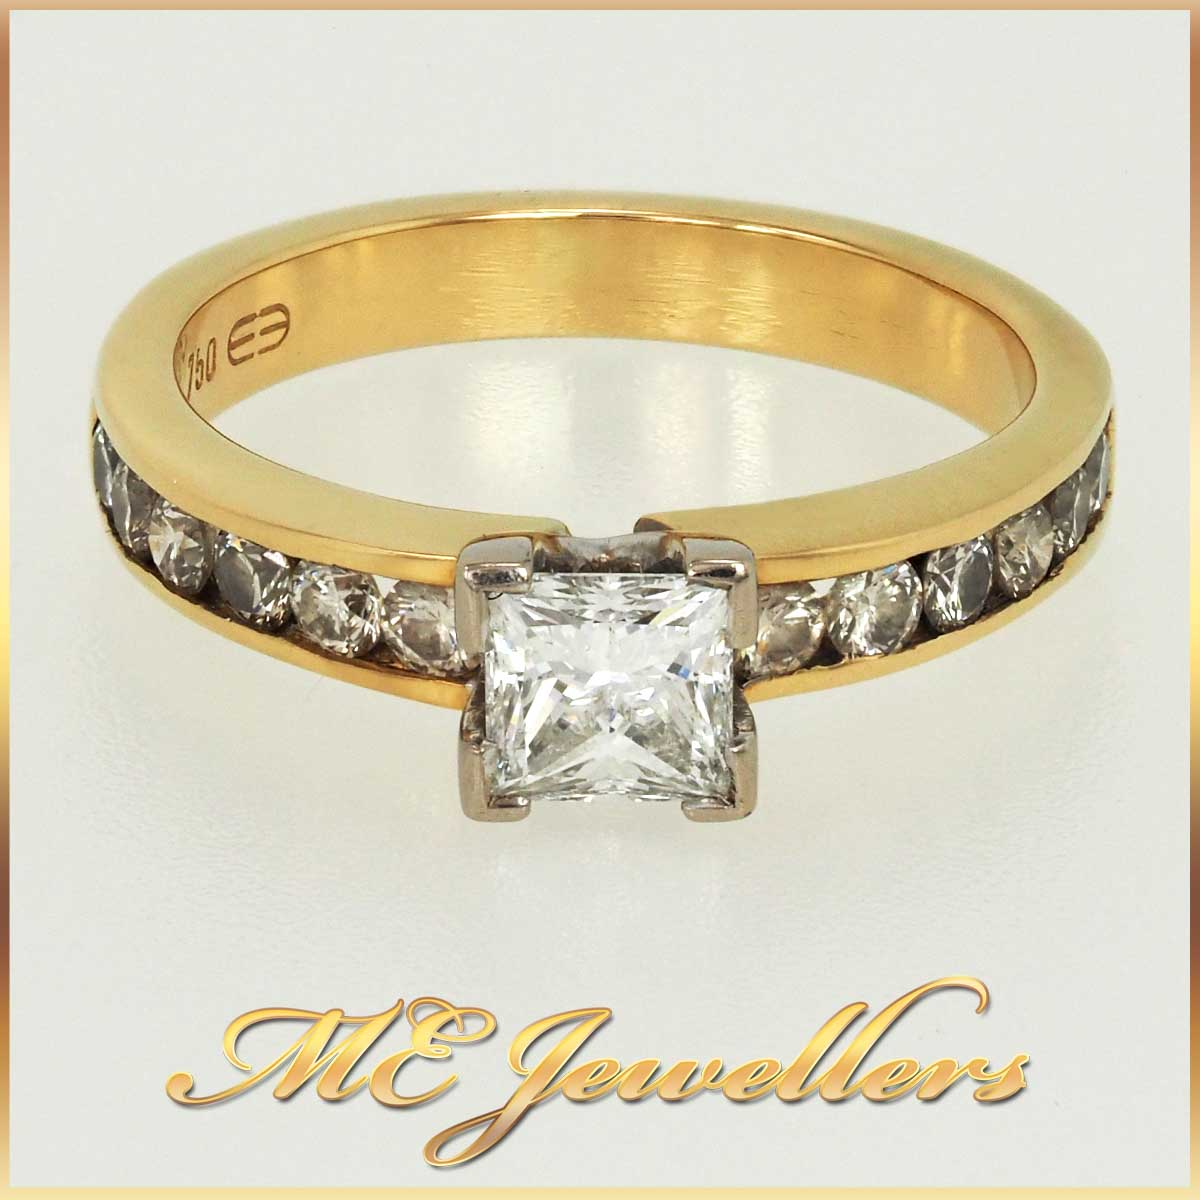 Solid 18K 18ct 18kt Yellow White Gold Princess Cut Diamond Engagement Ring With Accents Sz L 5